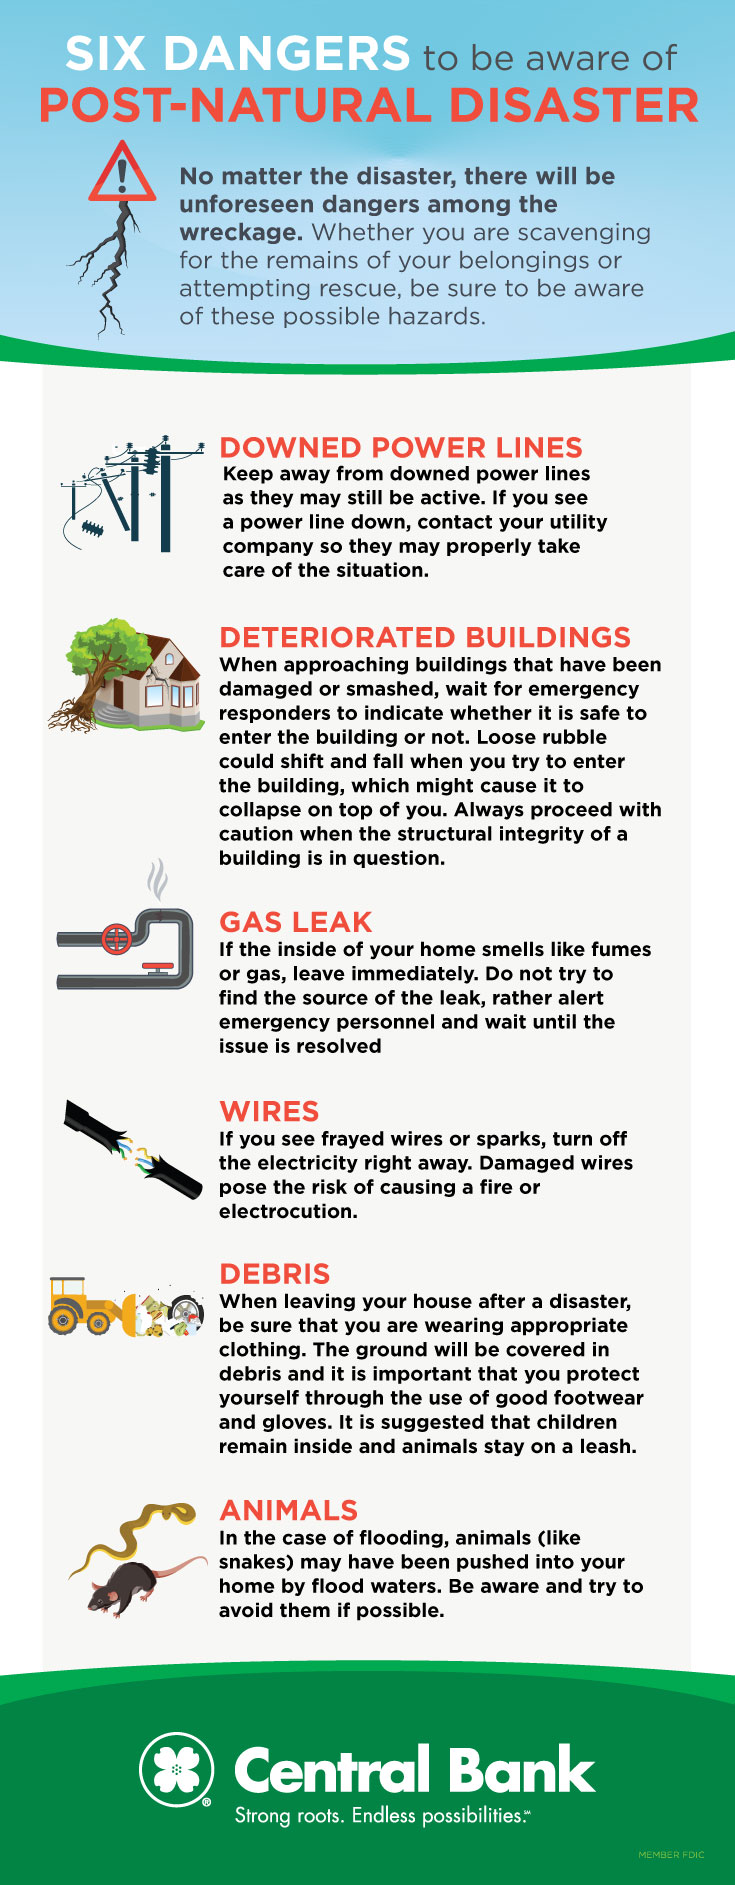 an infographic outlining six dangers to be aware of post-disaster